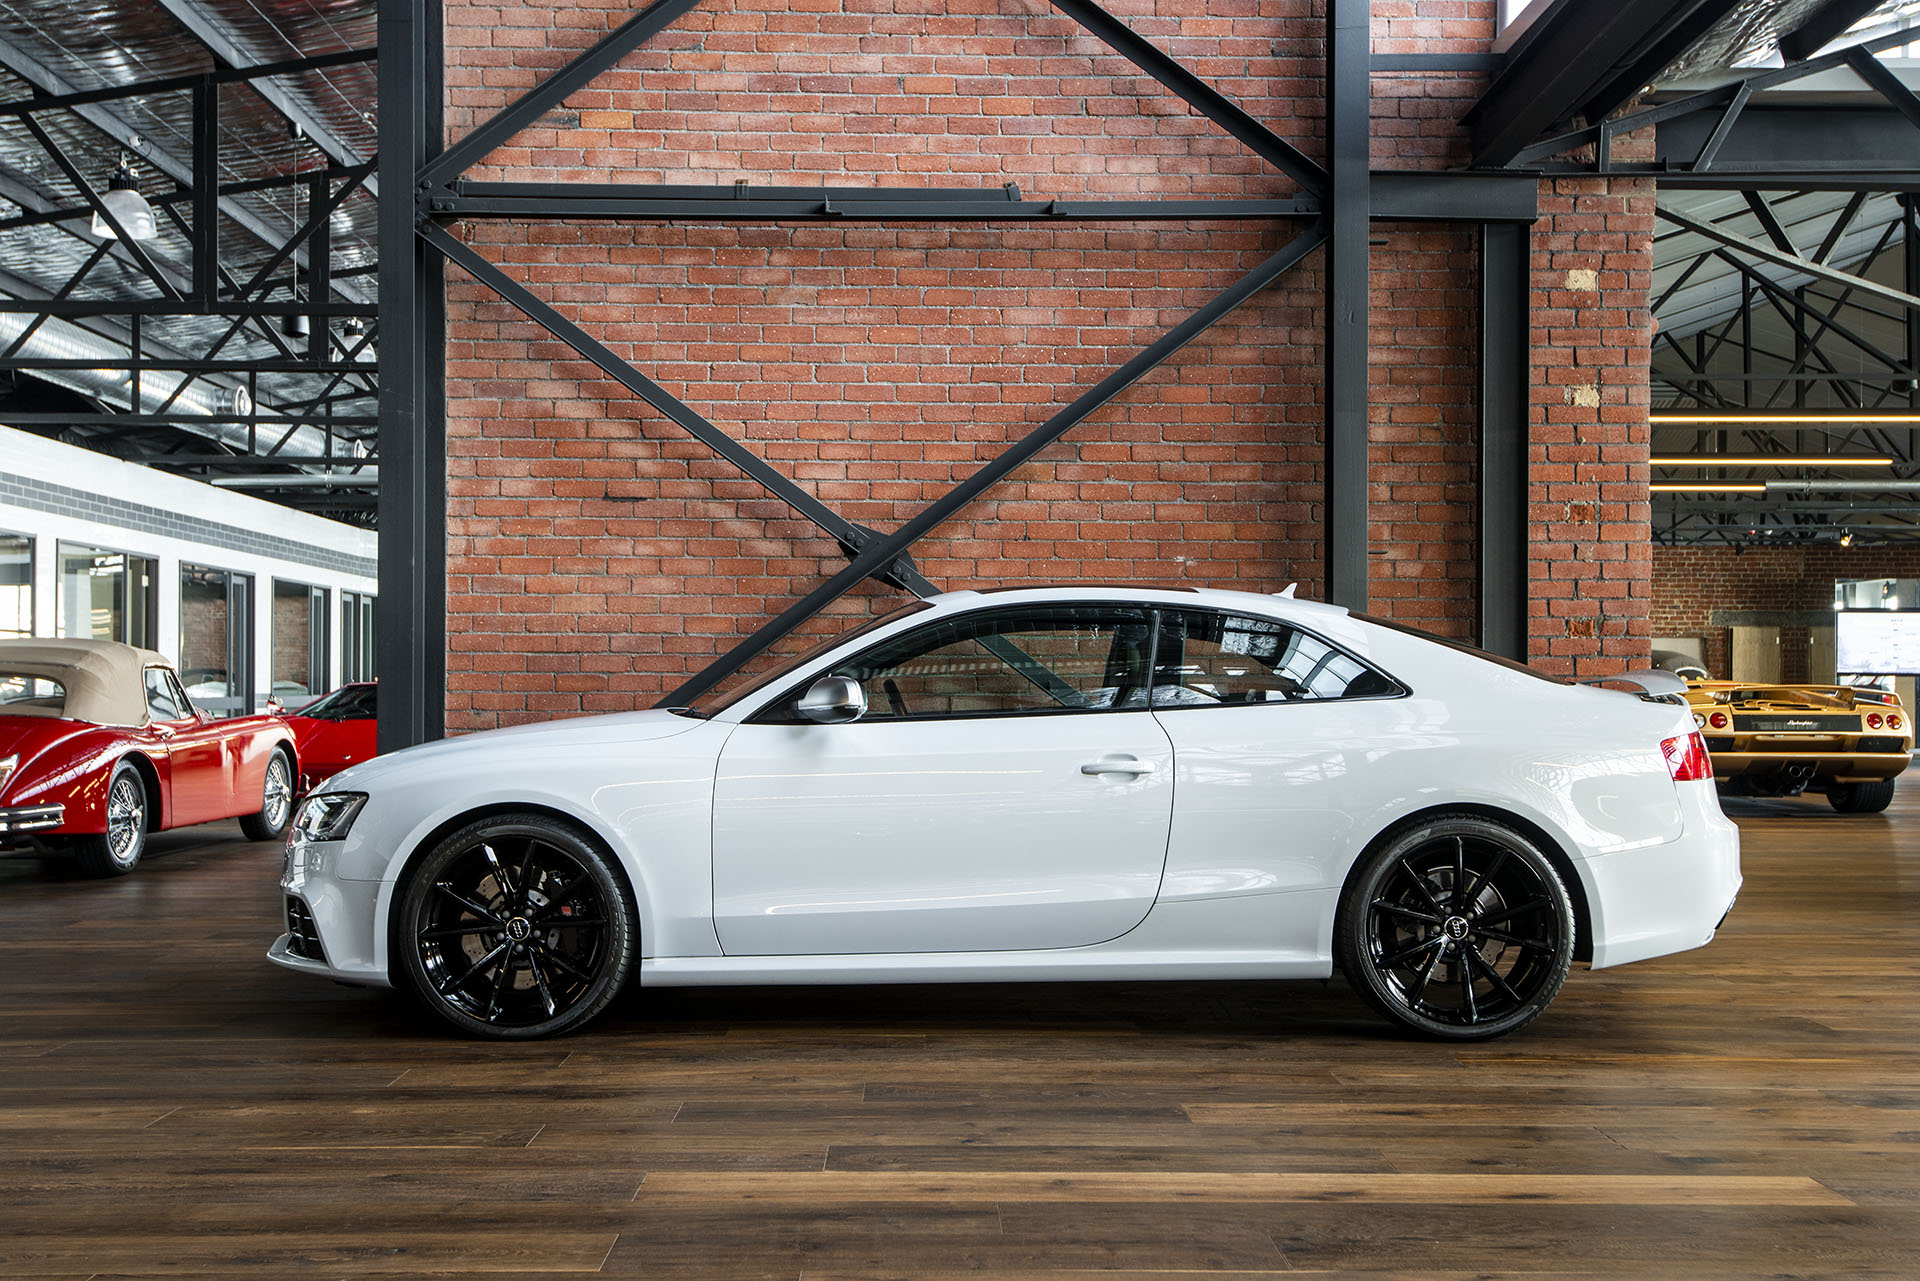 Audi New Cars >> 2013 Audi RS5 8T Coupe (MY14) - Richmonds - Classic and ...